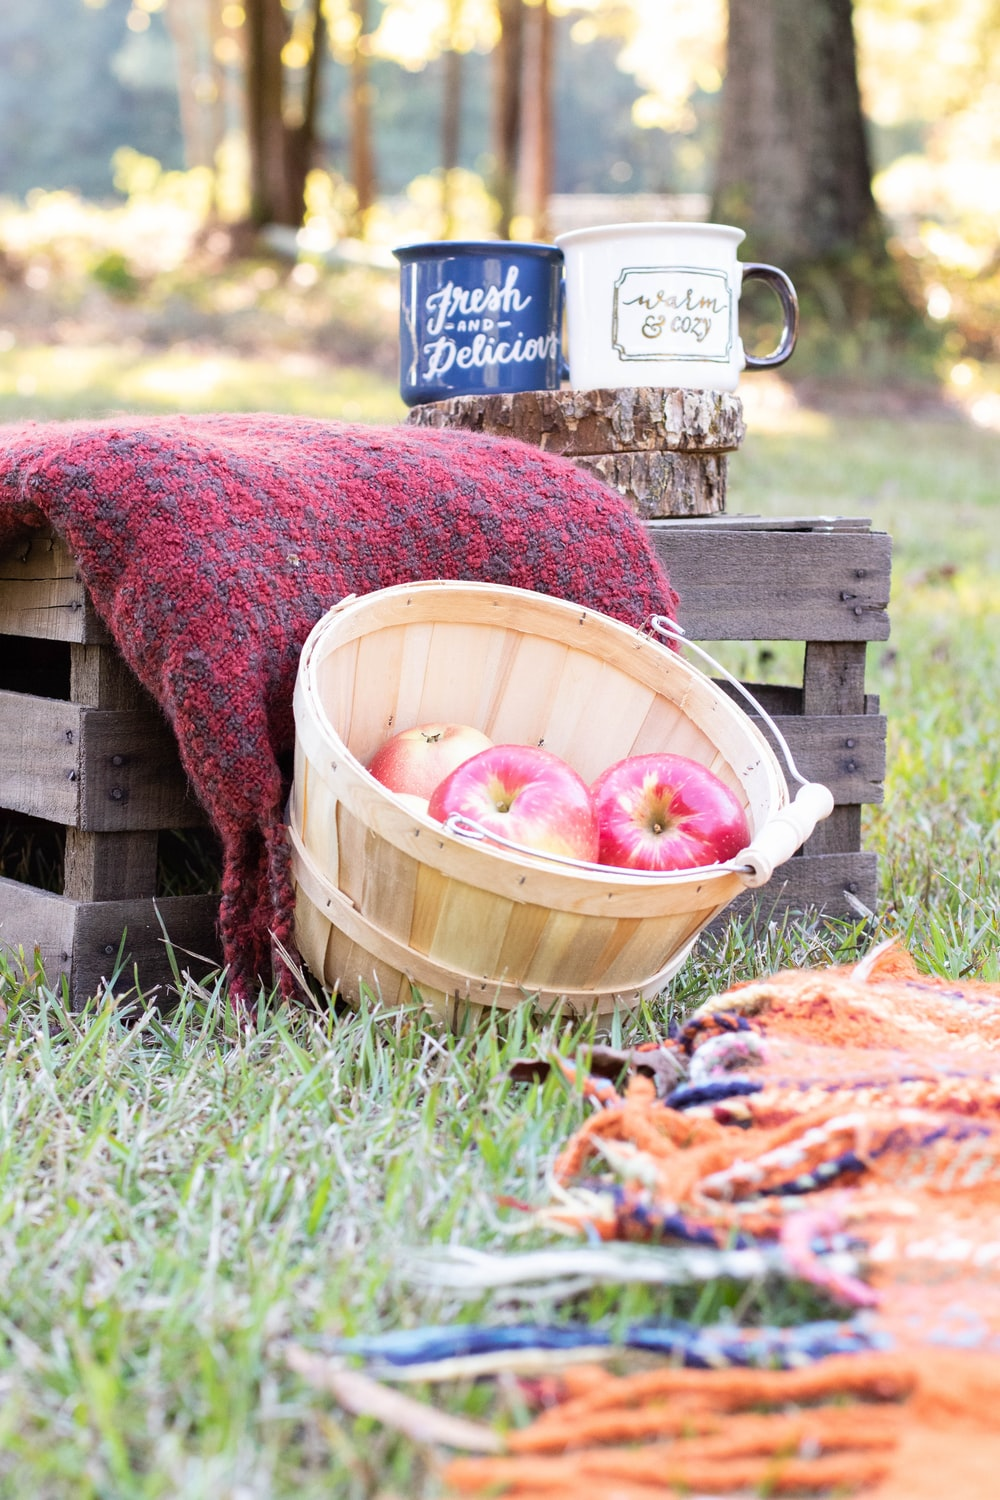 red and blue round fruits in brown wooden crate